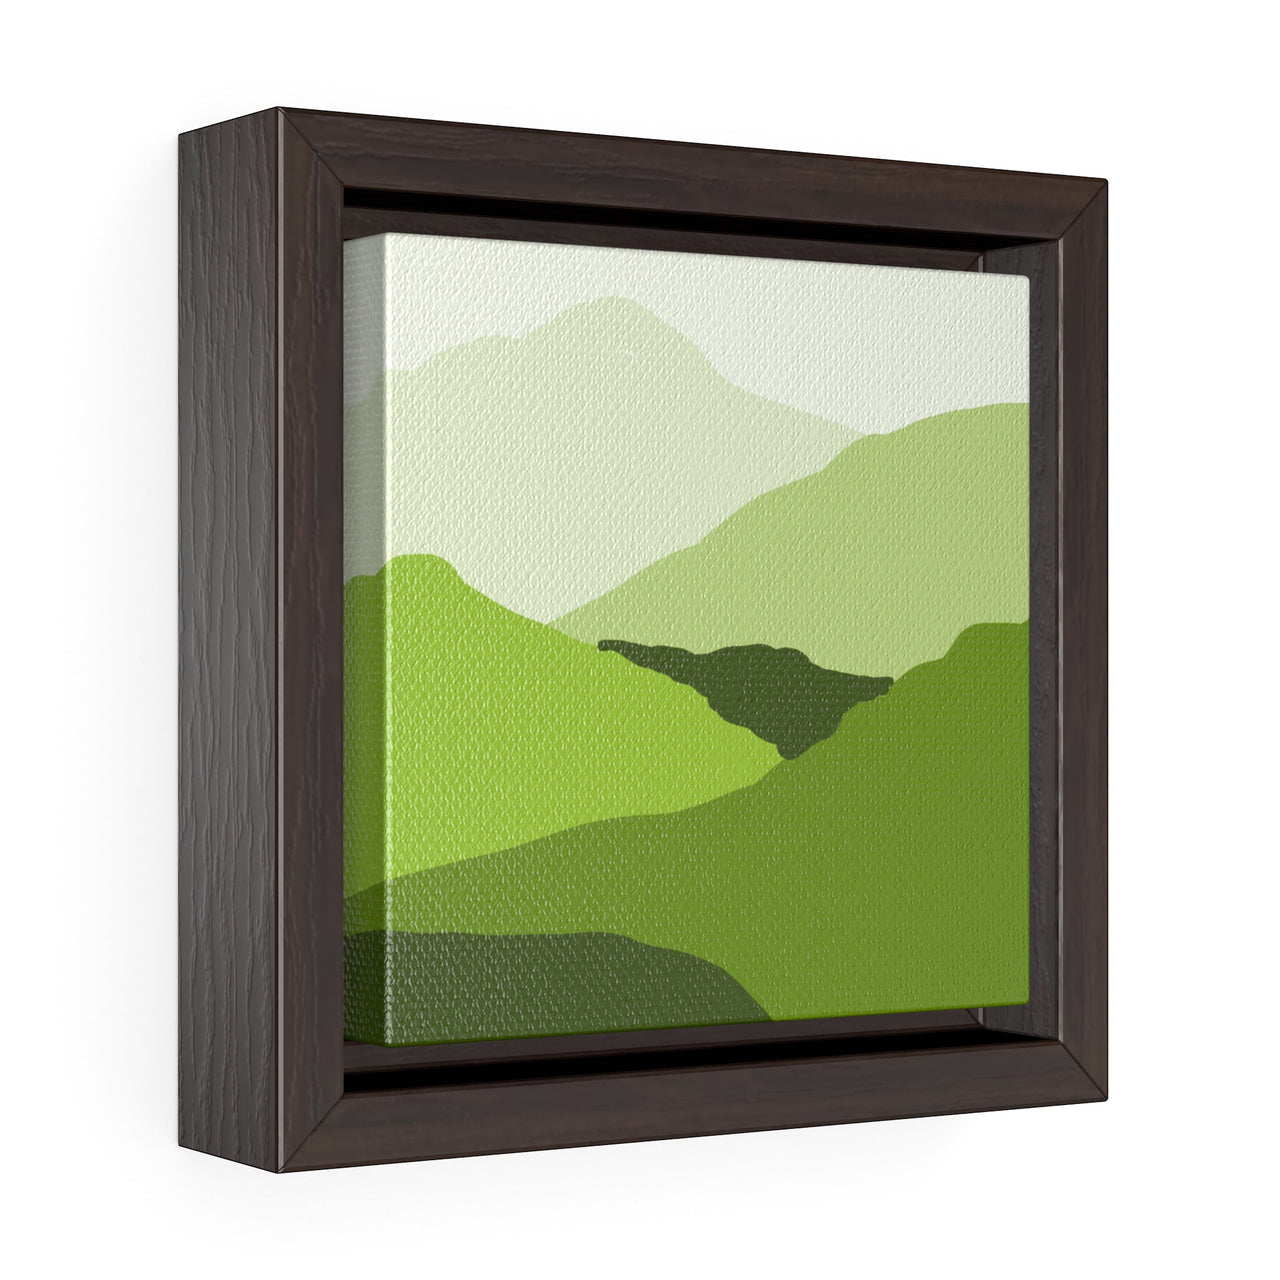 Canvas Wall Print - Green Mountain Landscape - Square Framed Premium Gallery Wrap Canvas - Falling Leaf Card Co.